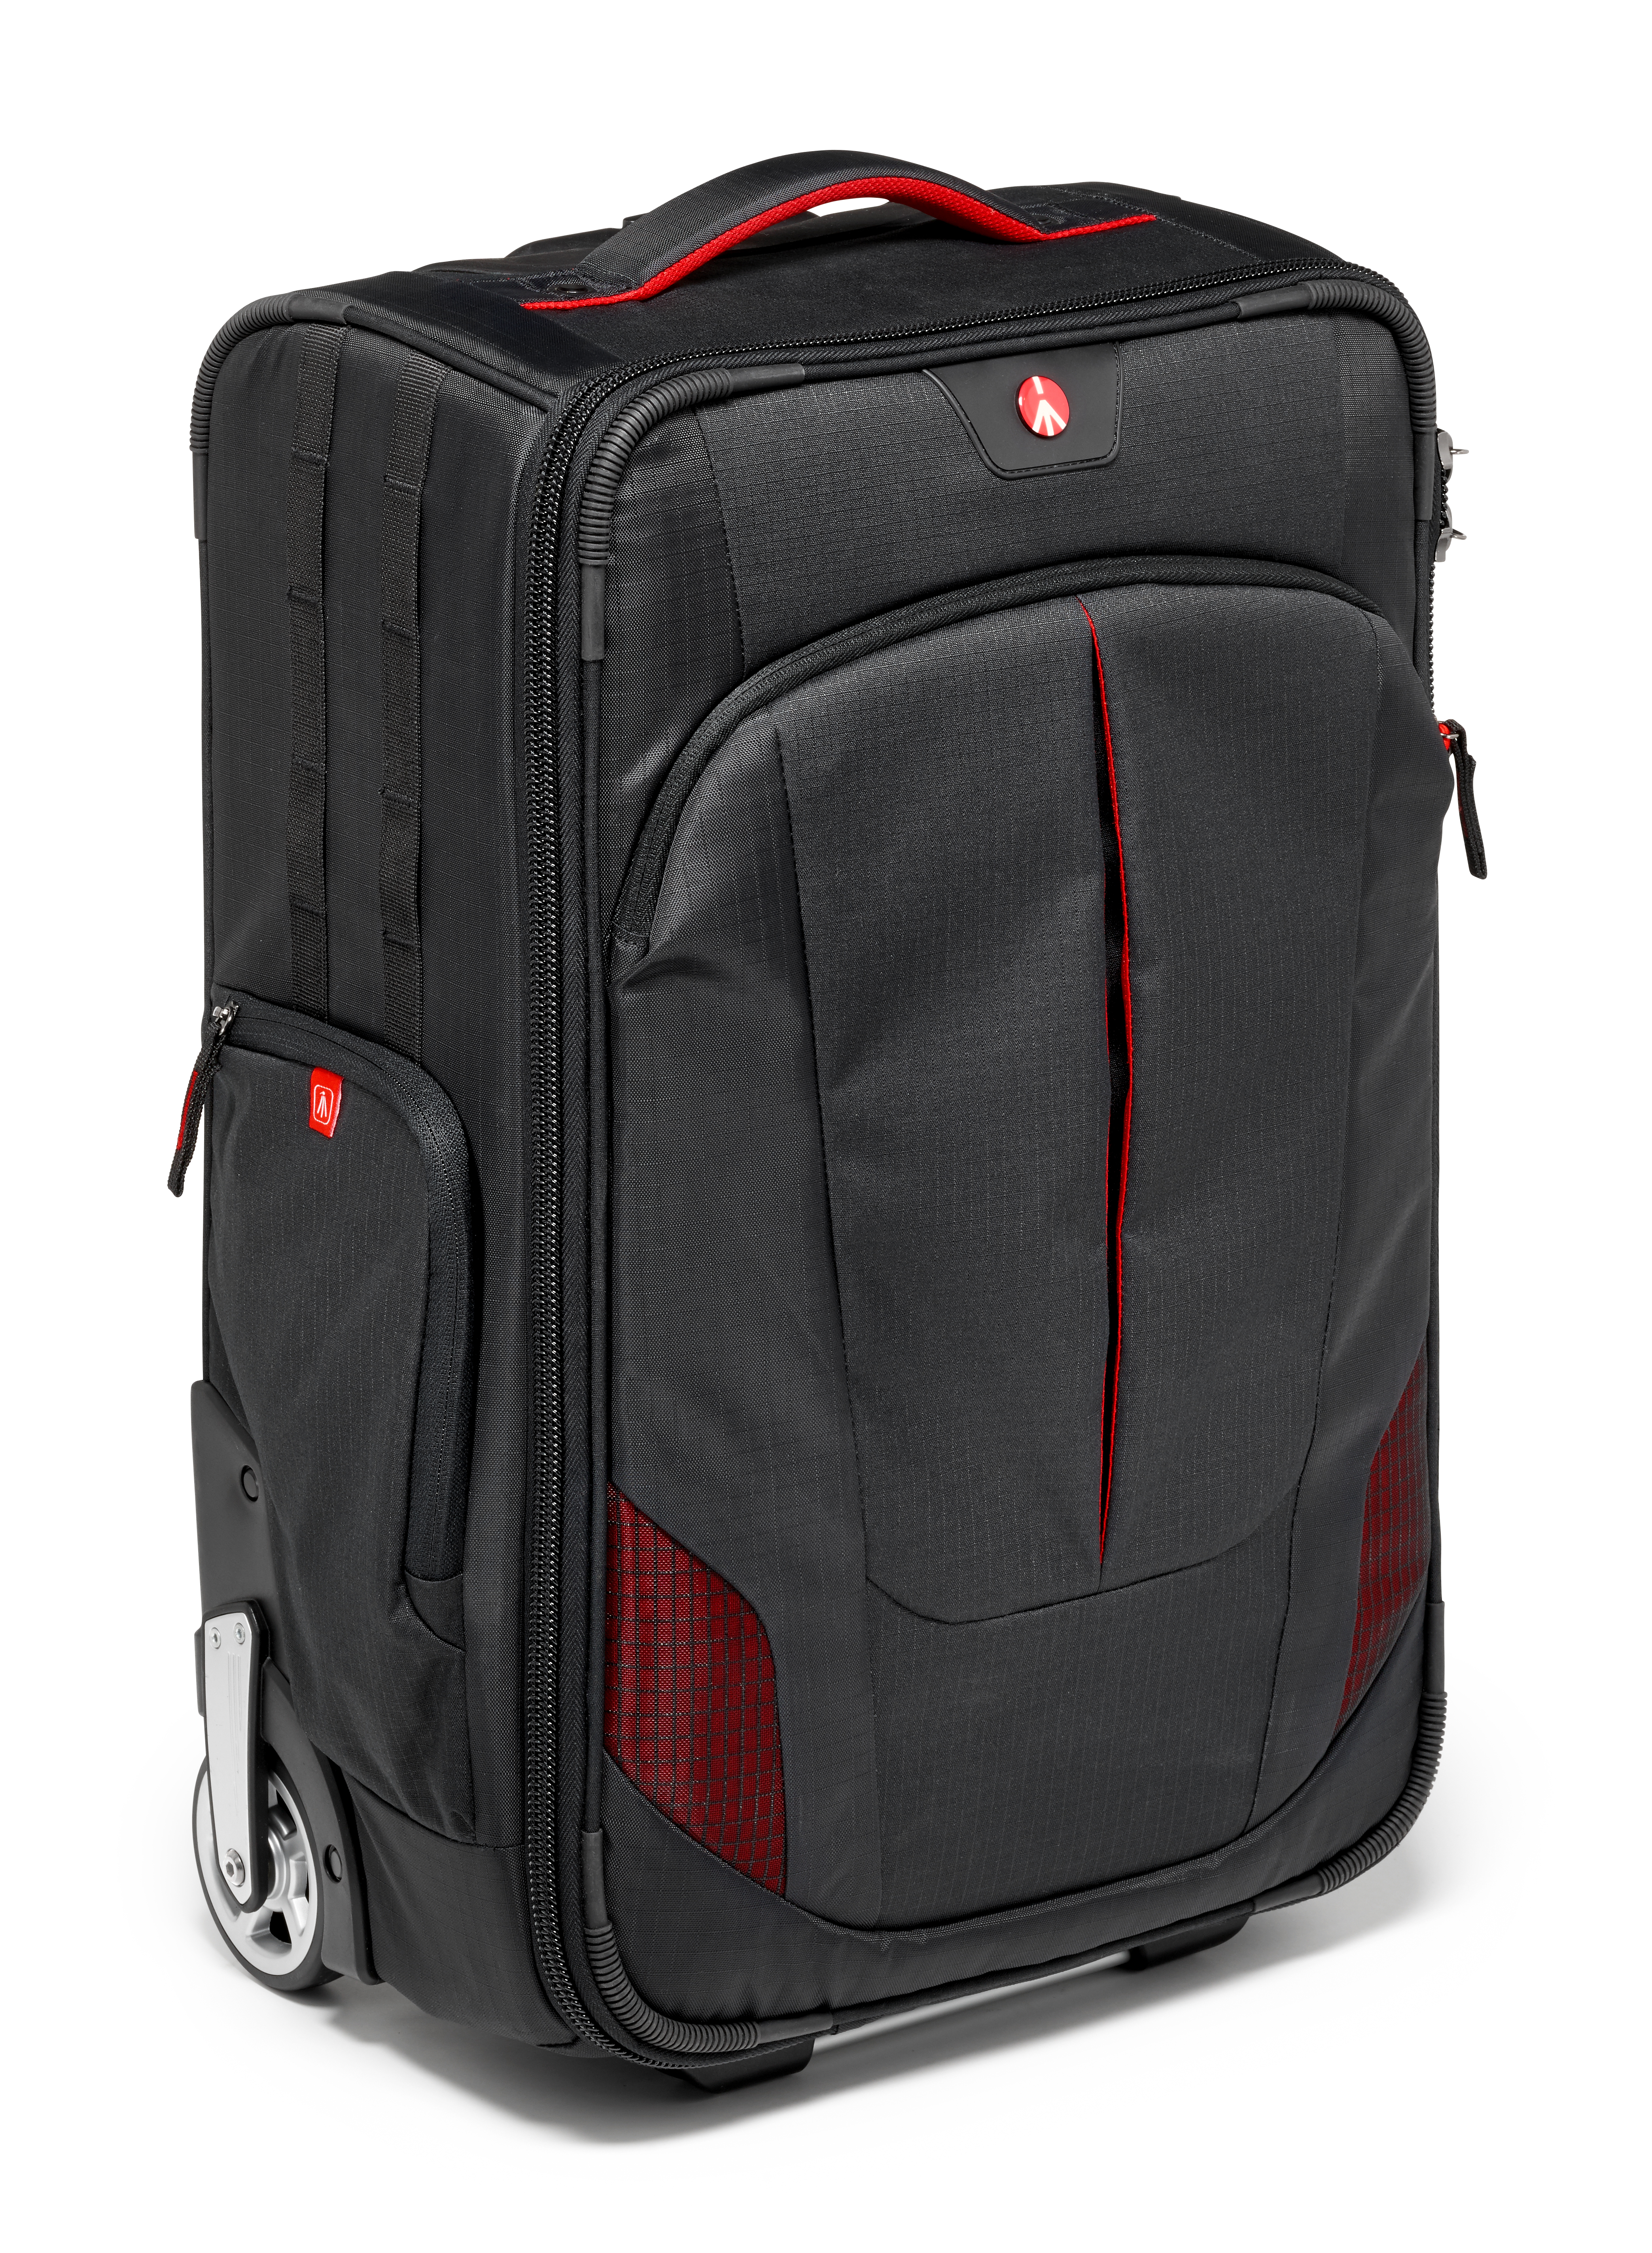 Manfrotto Pro Light Reloader-55 Roller Bag